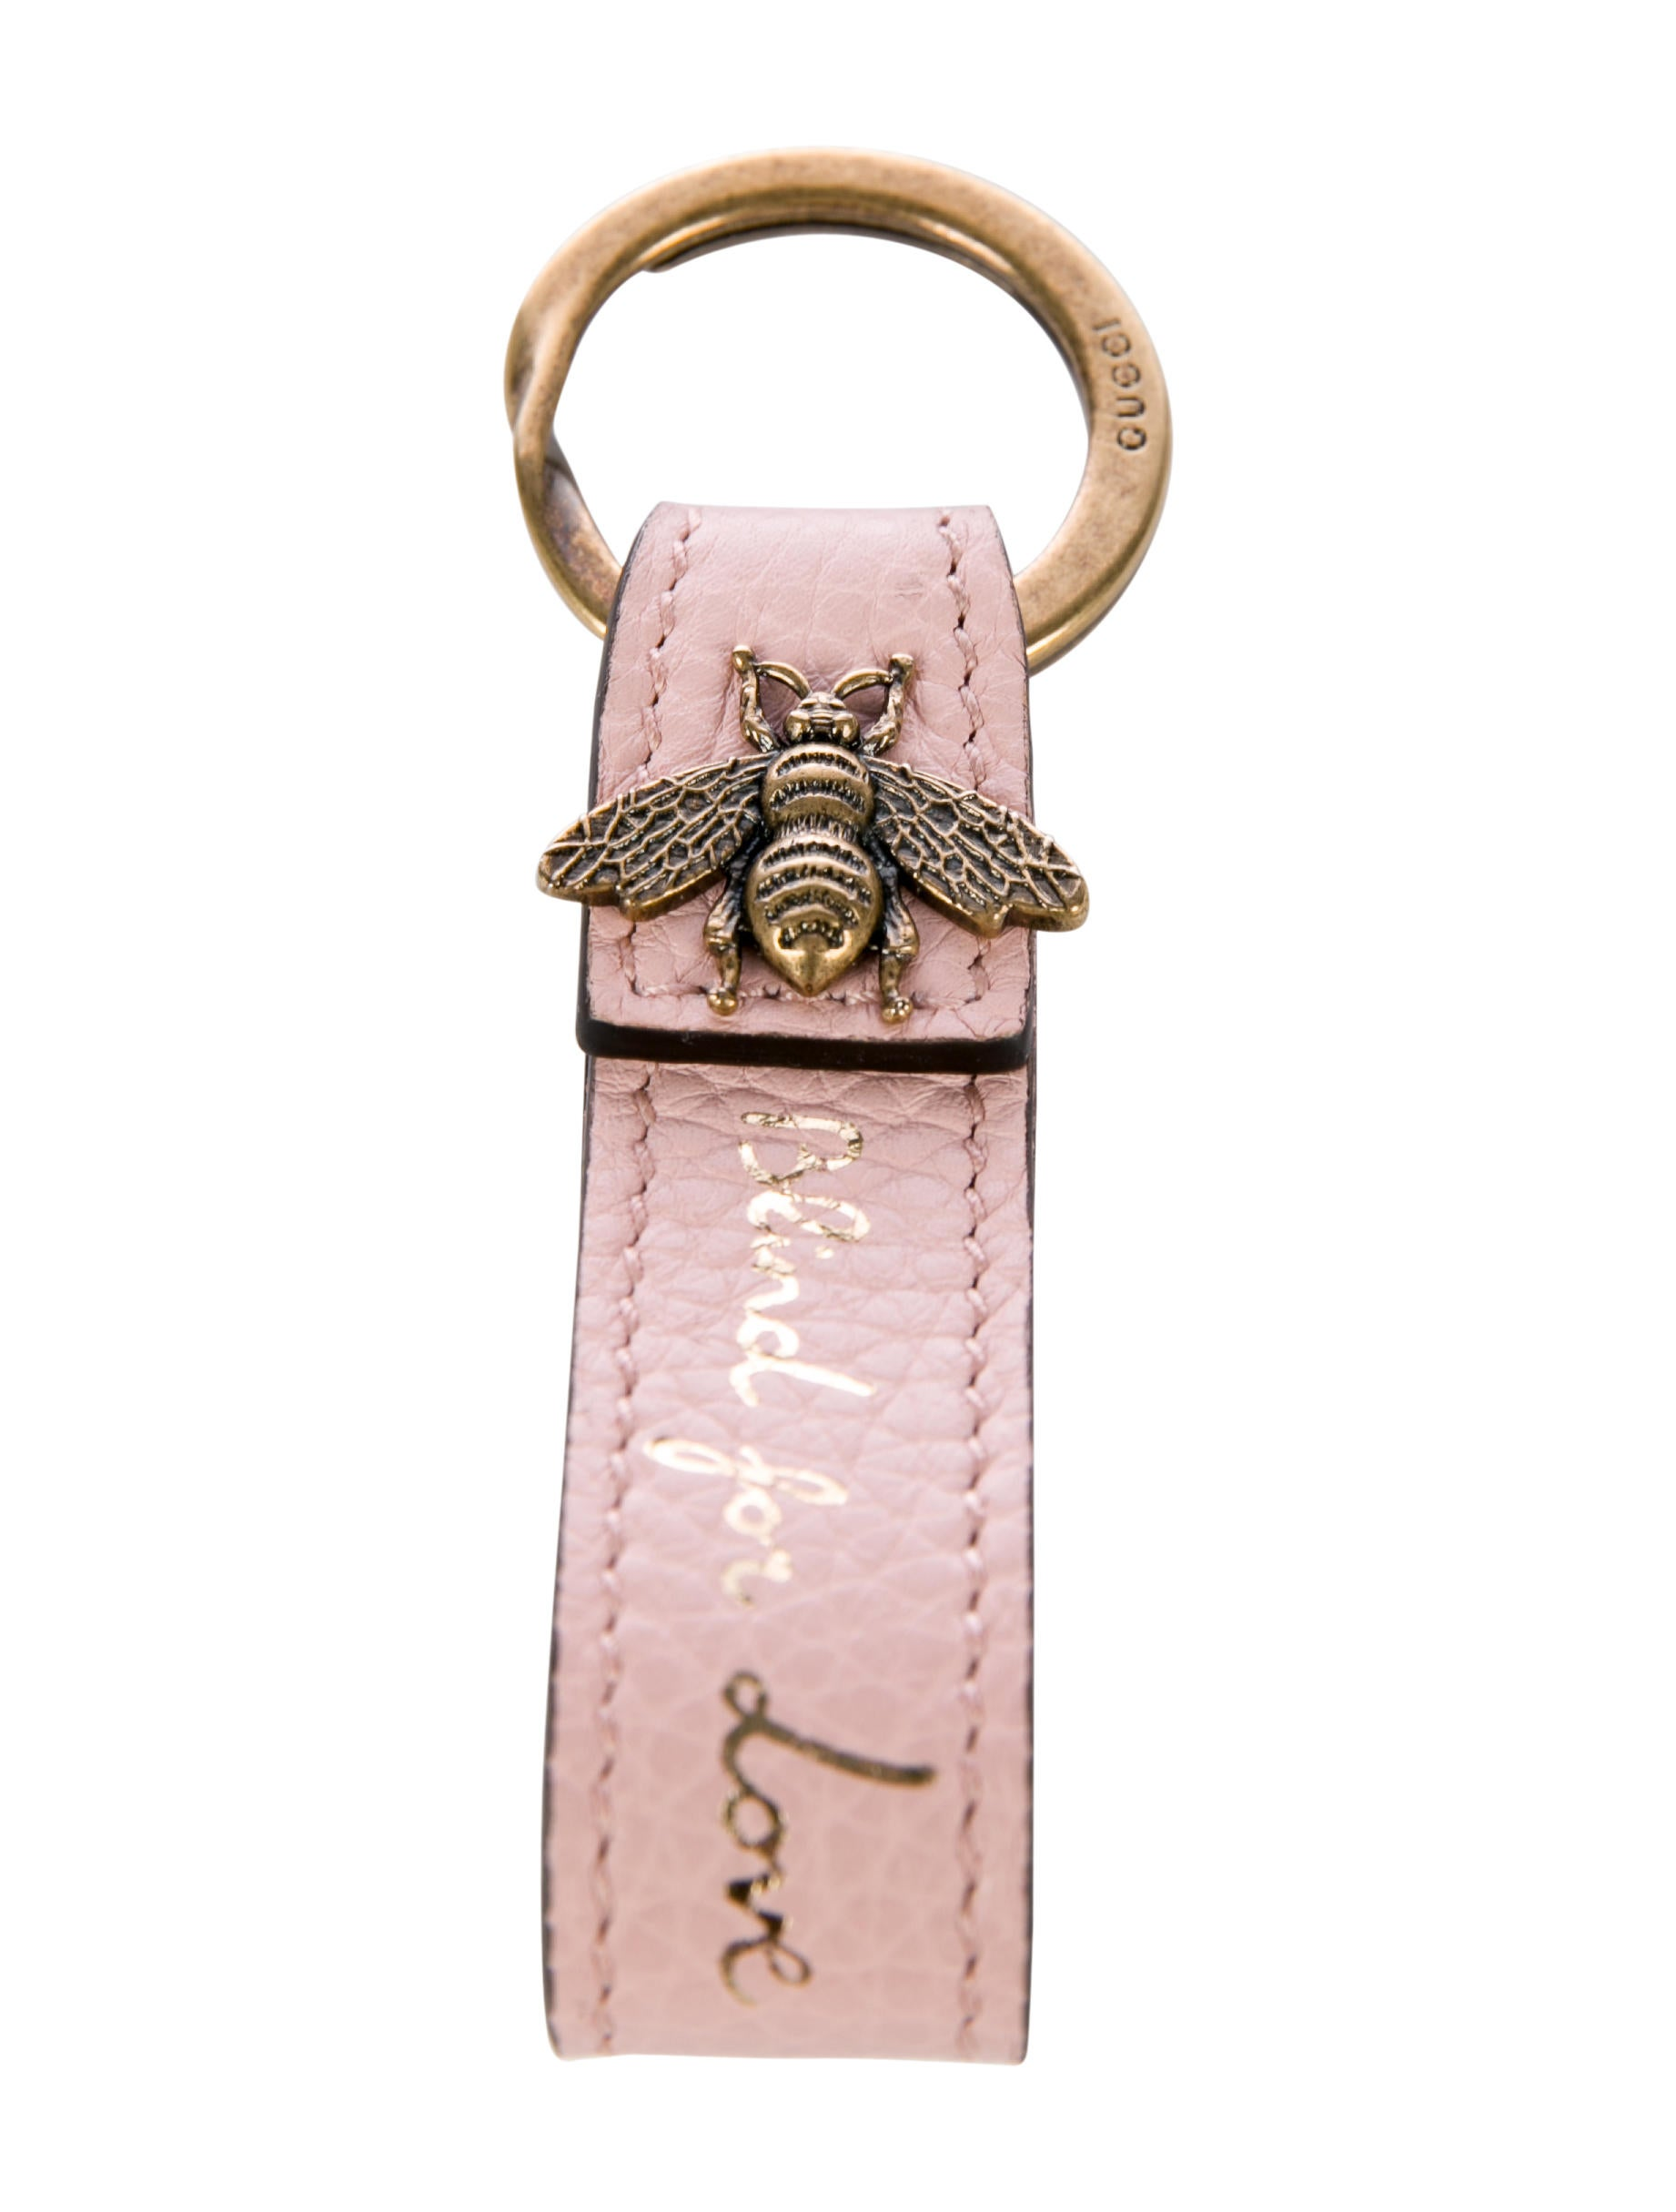 9dbf43b0b4d9a6 Gucci Bee Leather Keychain - Accessories - GUC209971 | The RealReal